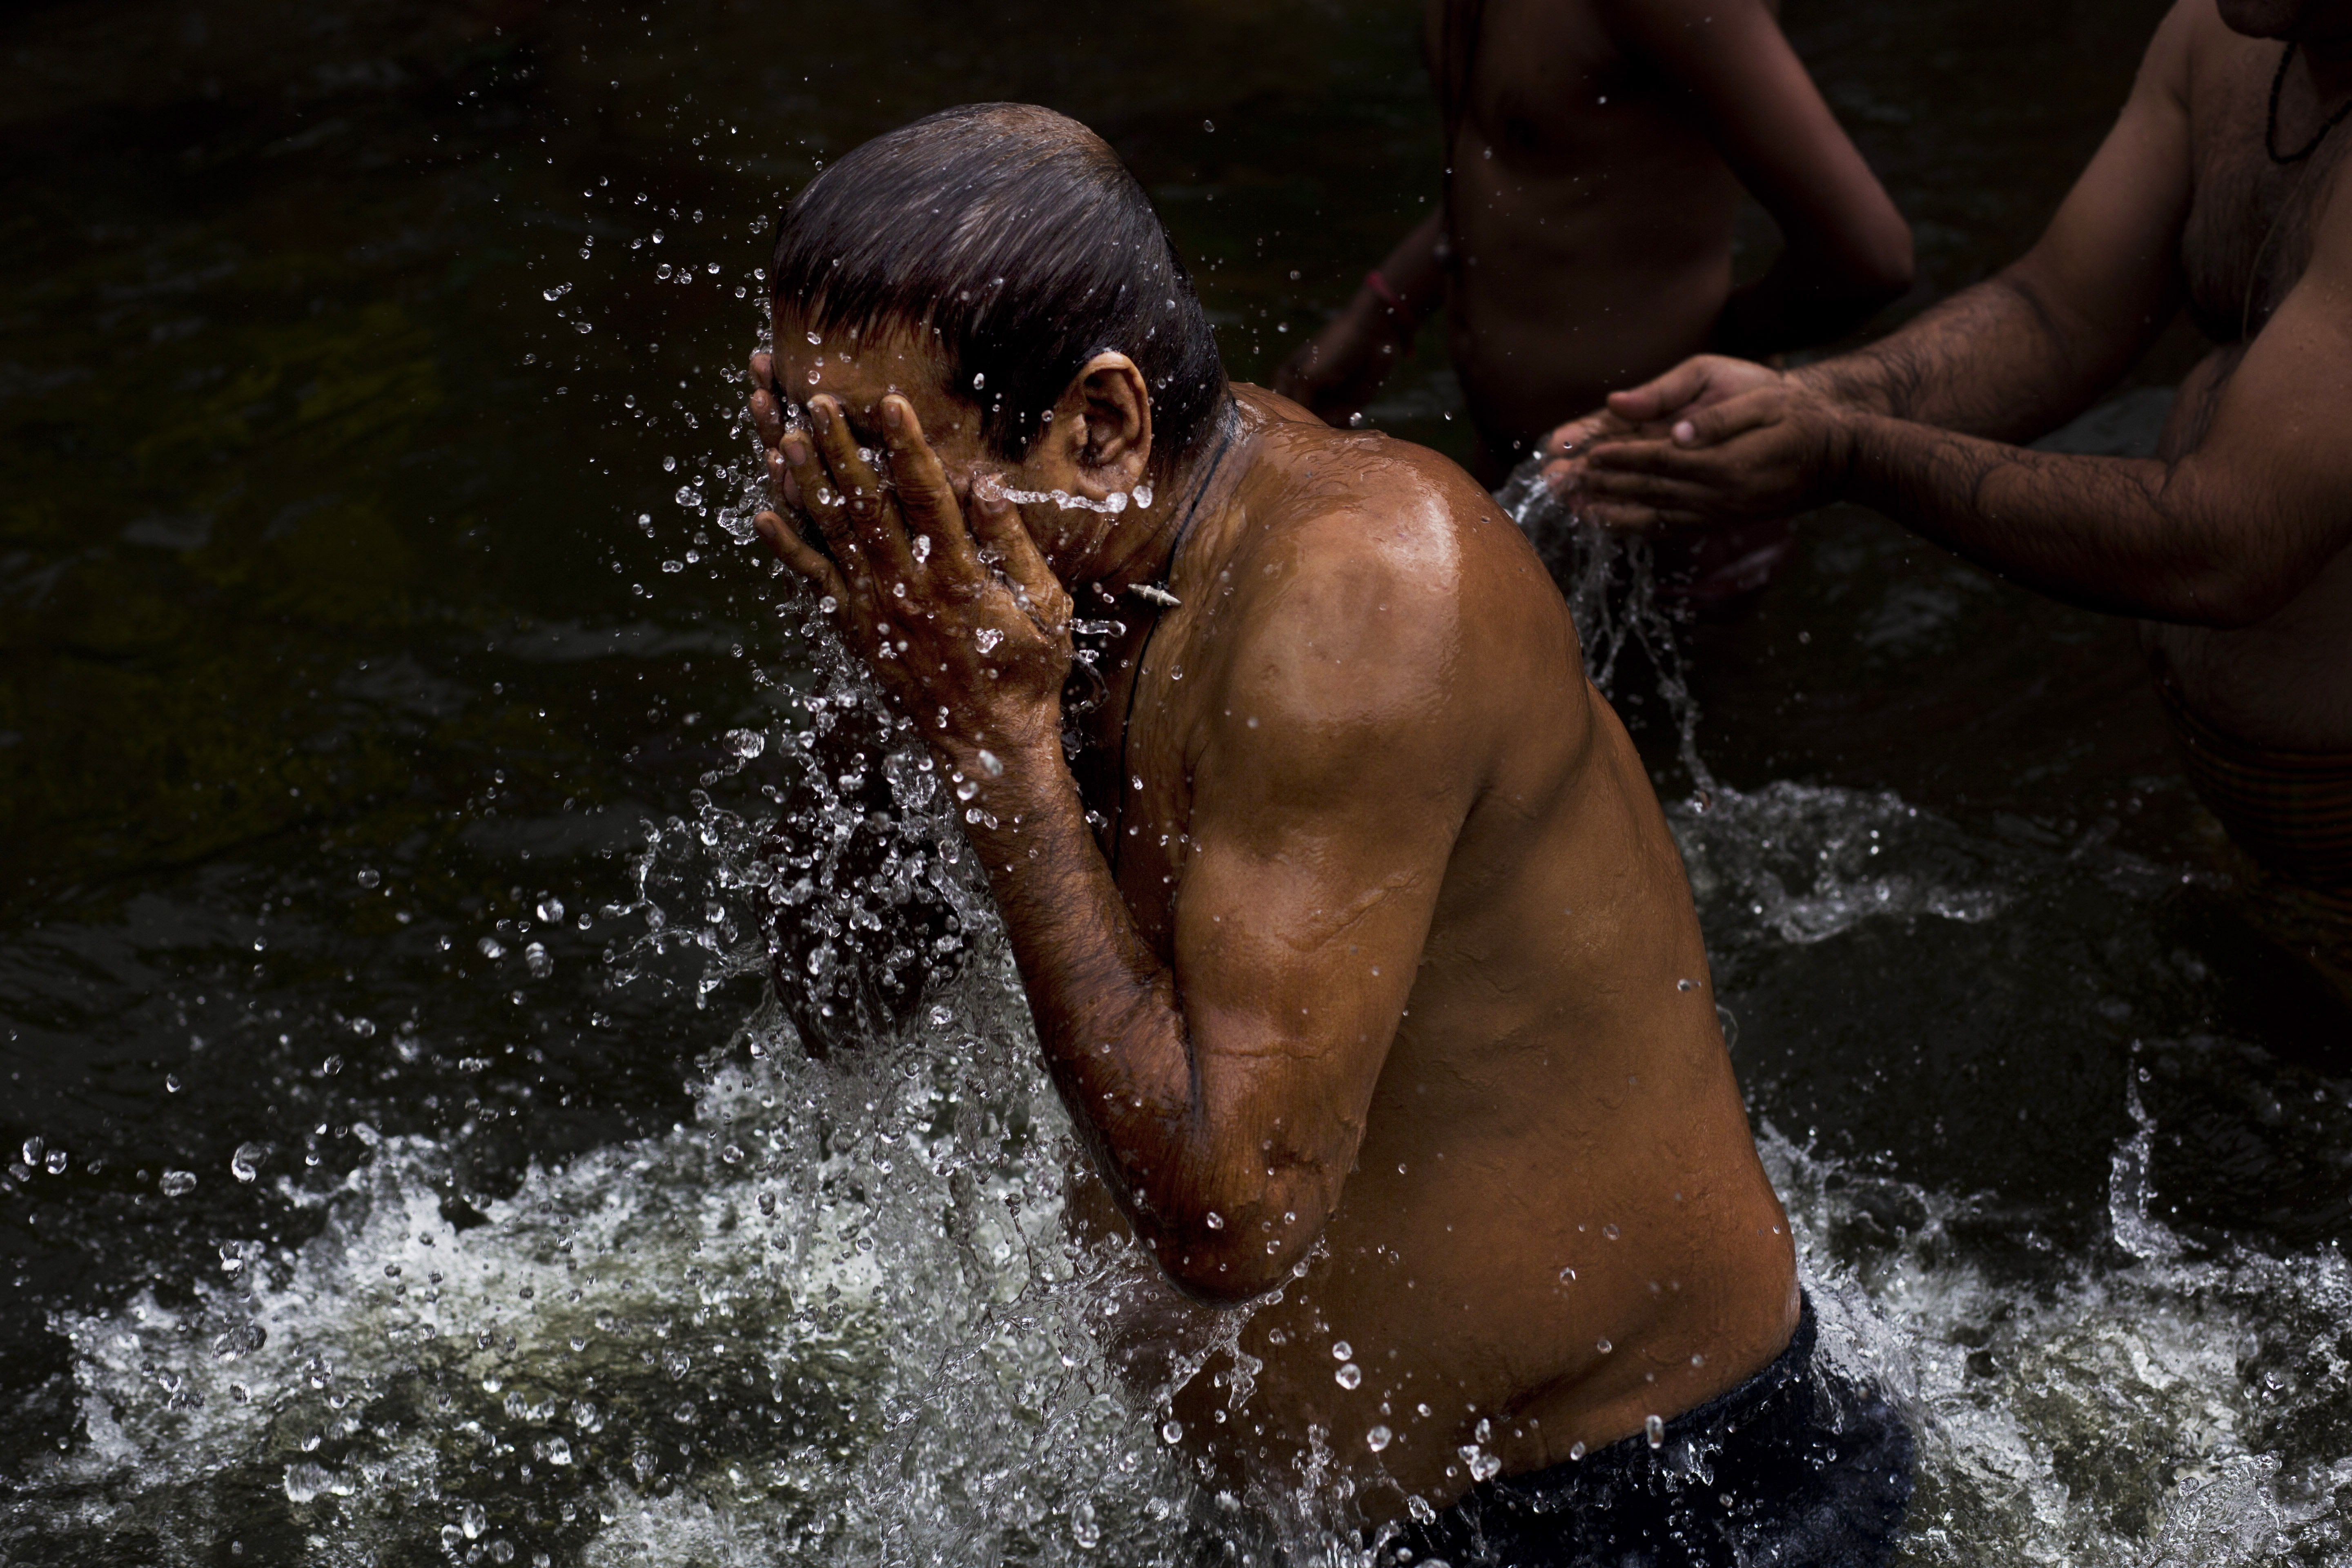 Hindu devotees perform a holy dip in the Godavari River during Kumbh Mela, or Pitcher Festival, in Nasik, India, on Aug. 26, 2015